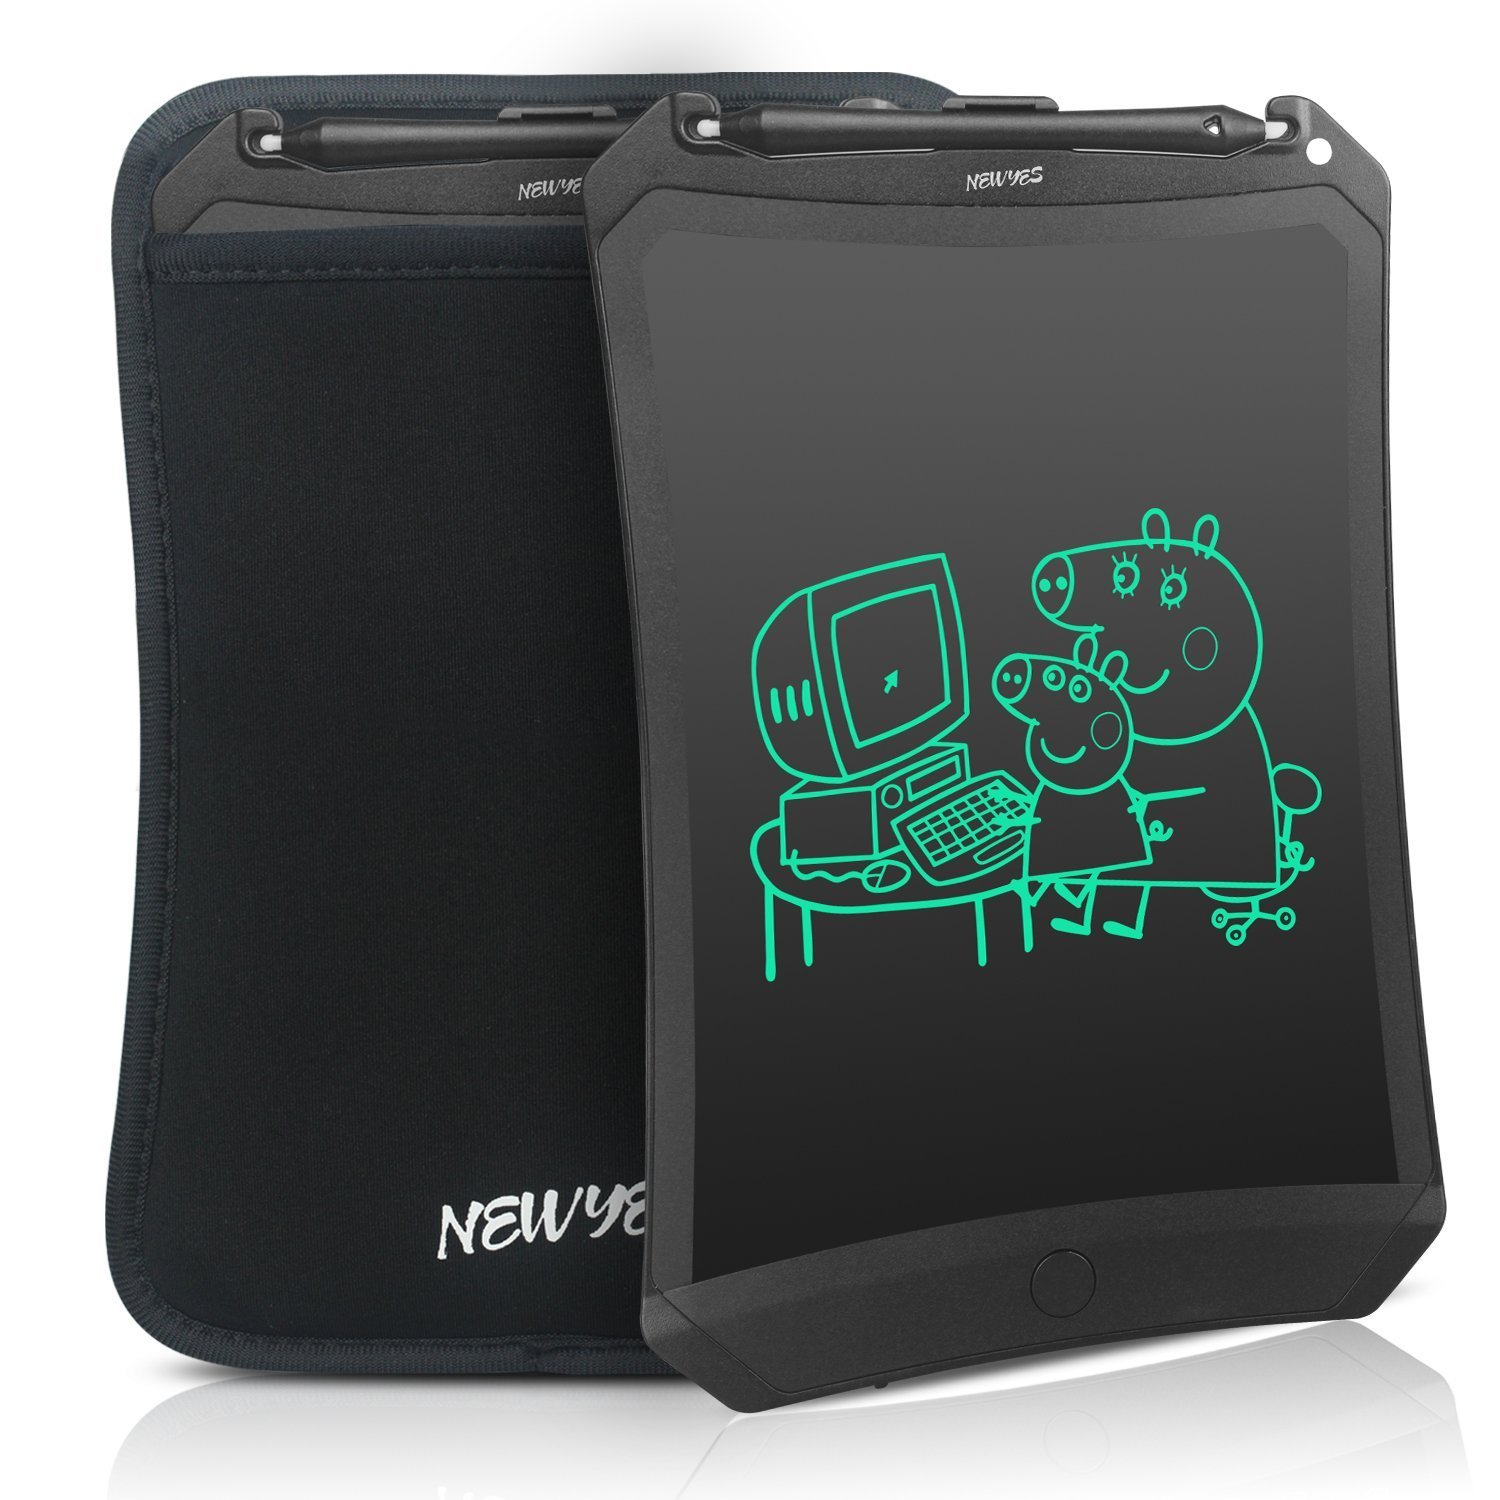 (Upgrade Version) Robot pad 8.5 Inch LCD Writing tablet electronic doodle pad Drawing board gifts for kids office writing board with brighter writing (black) Newyes HT-8.5Bobot